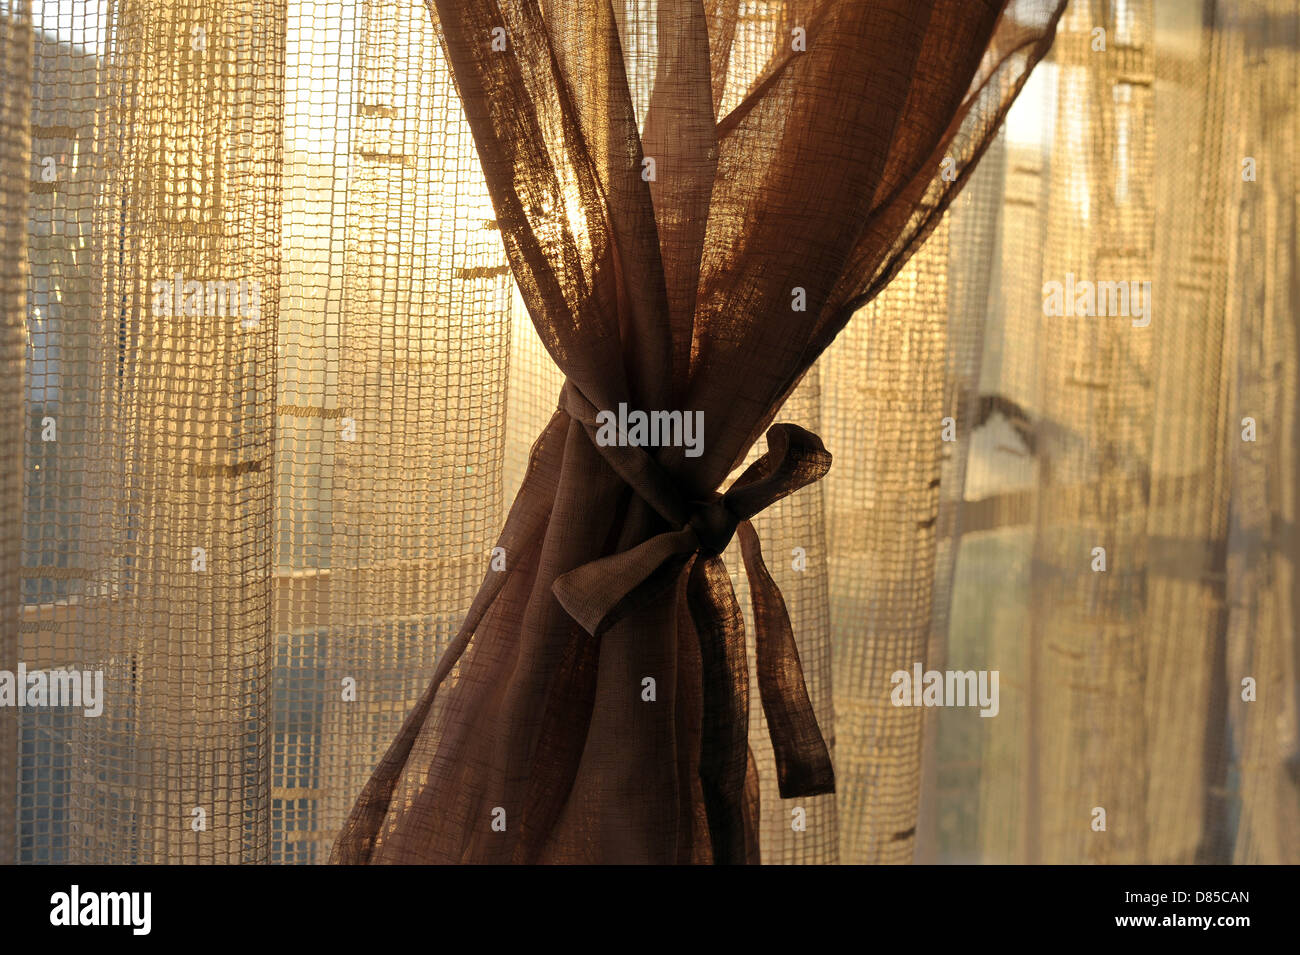 Net curtains tied back in a South African home. - Stock Image